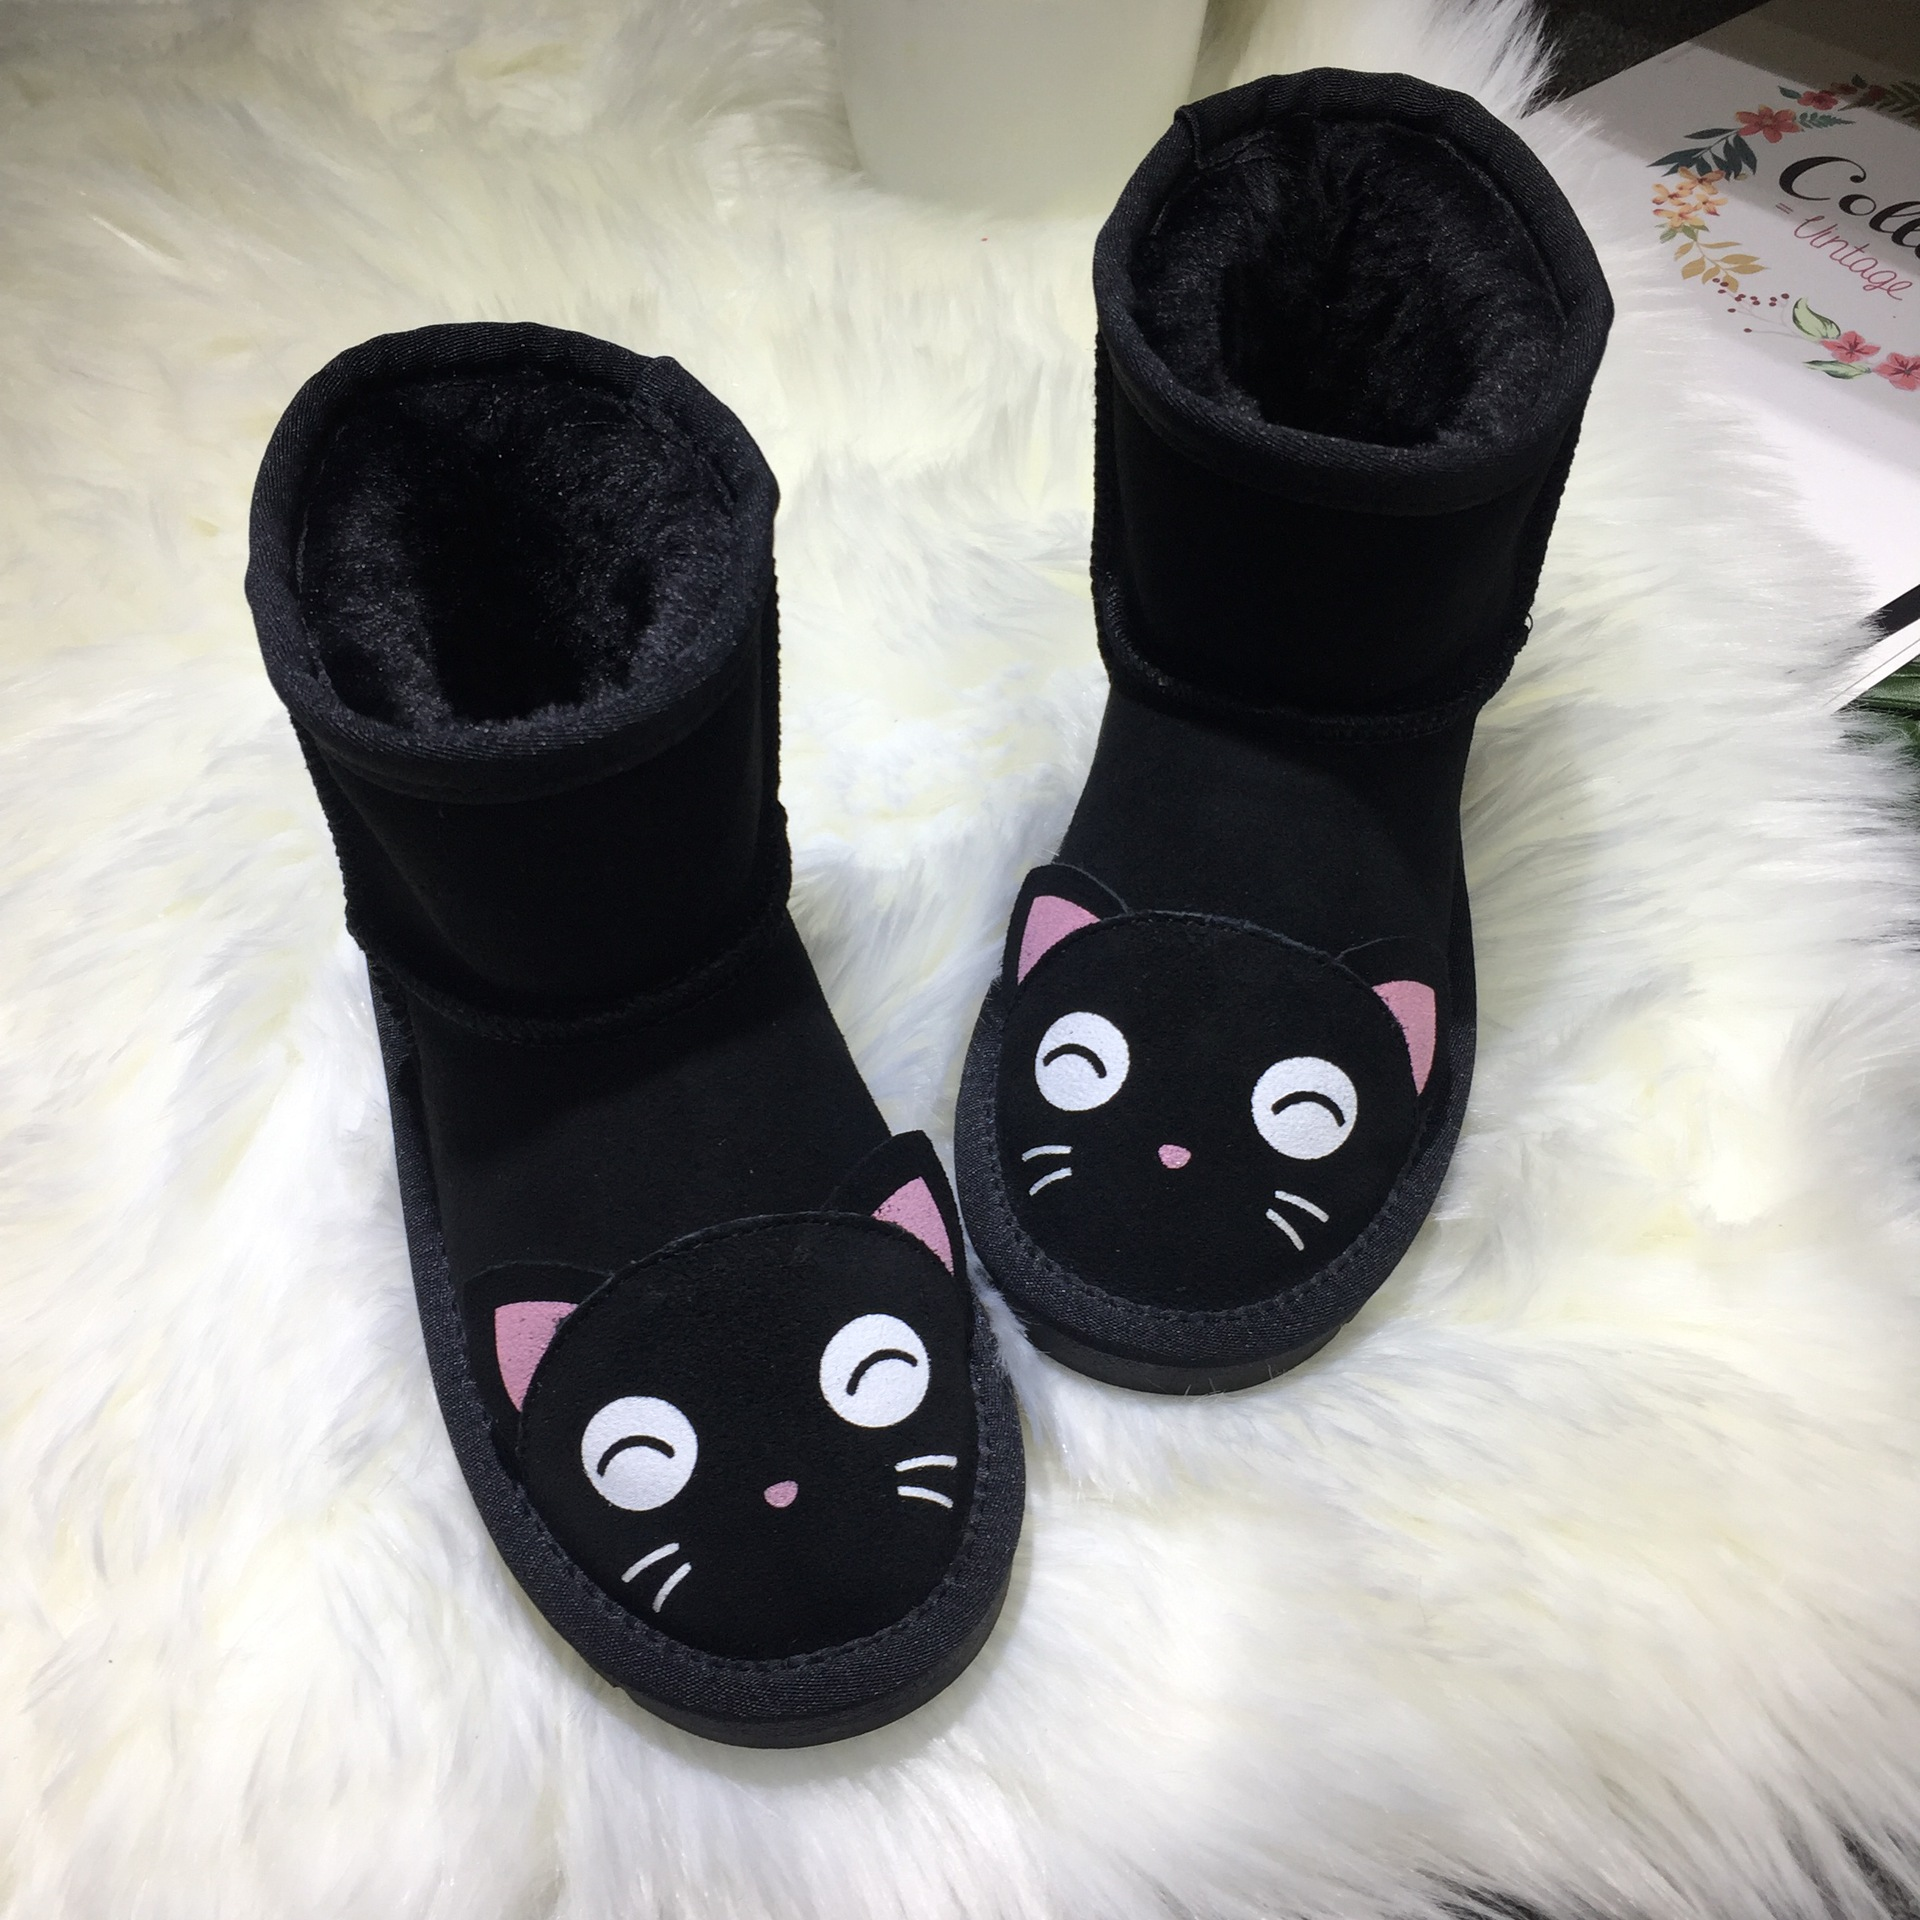 Kid Baby Leather Cartoon Children Snow Boots Boys Girls High-cut Warm Shoes Cartoon Snow Non-slip Cut ShoesKid Baby Leather Cartoon Children Snow Boots Boys Girls High-cut Warm Shoes Cartoon Snow Non-slip Cut Shoes